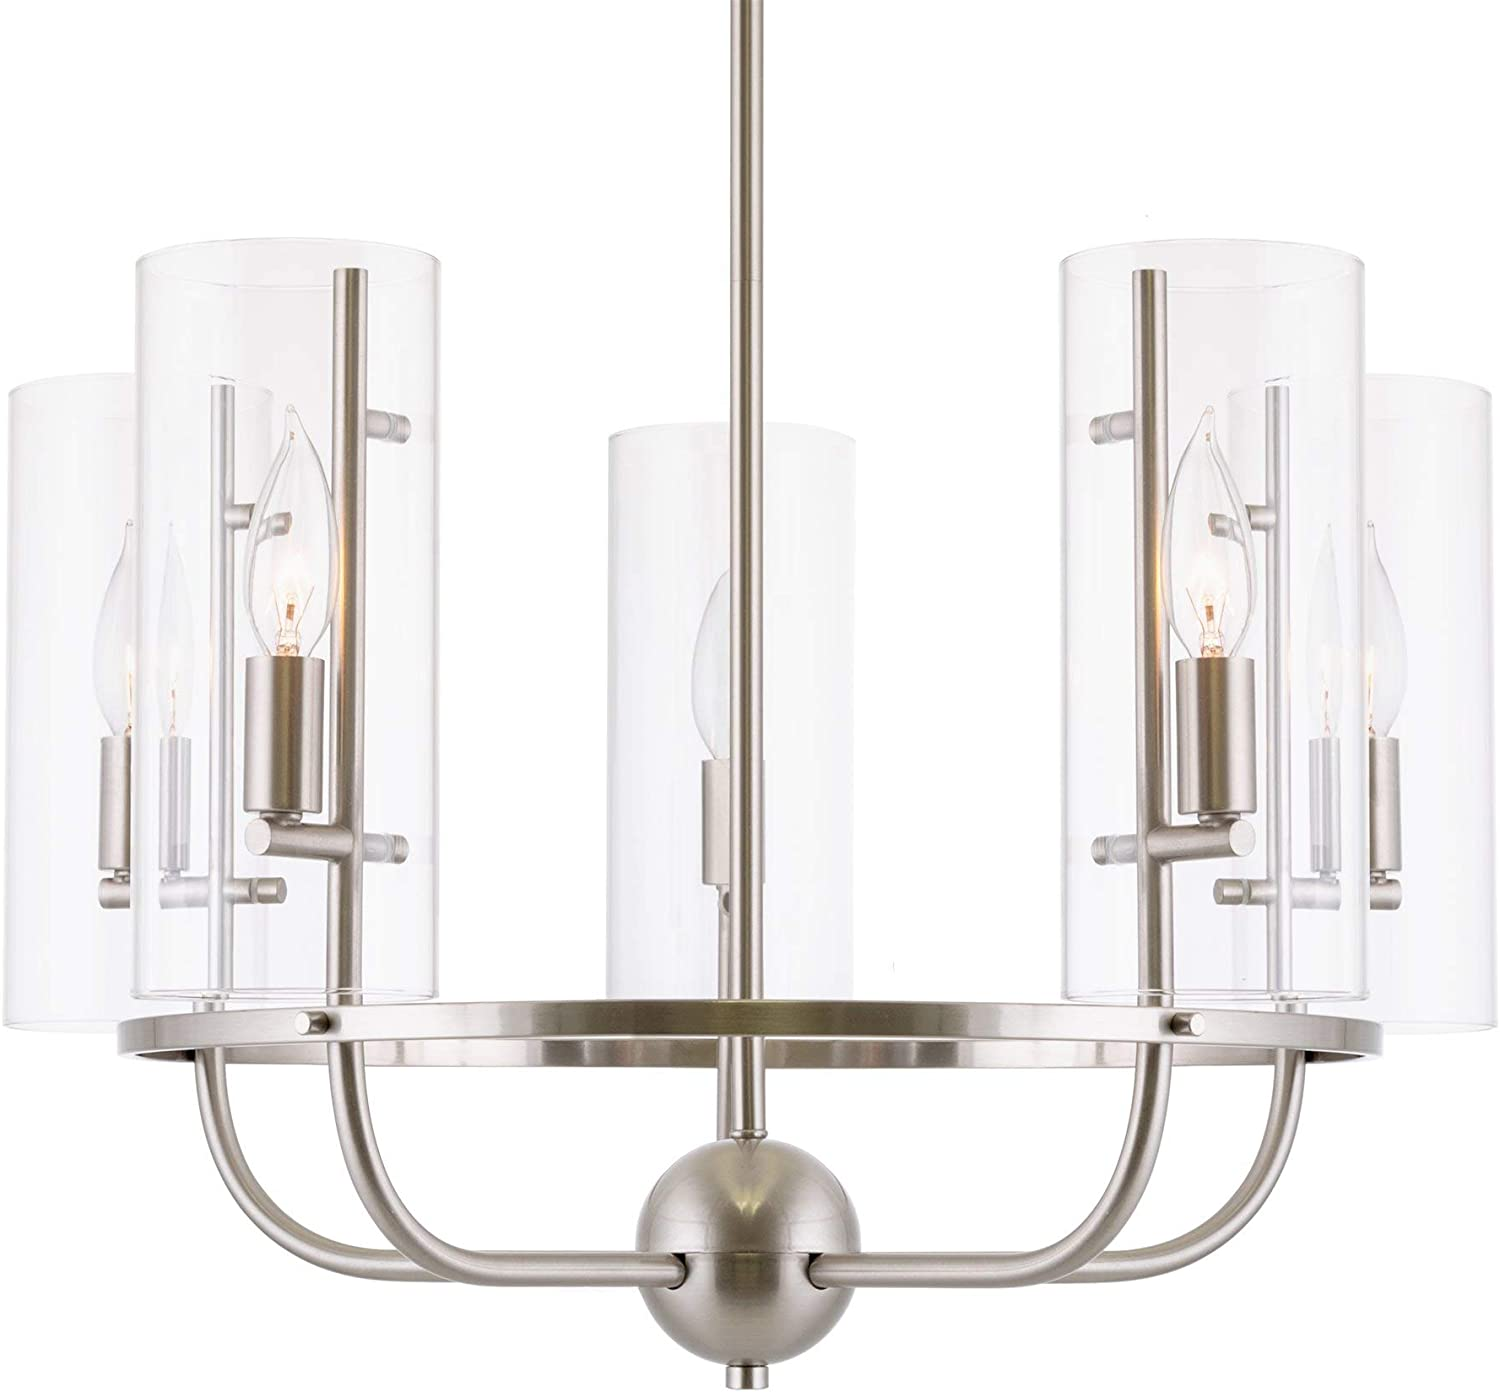 Kira Home Inara 22.5 Modern 5-Light Chandelier Clear Cylinder Glass Shades, Adjustable Height, Brushed Nickel Finish